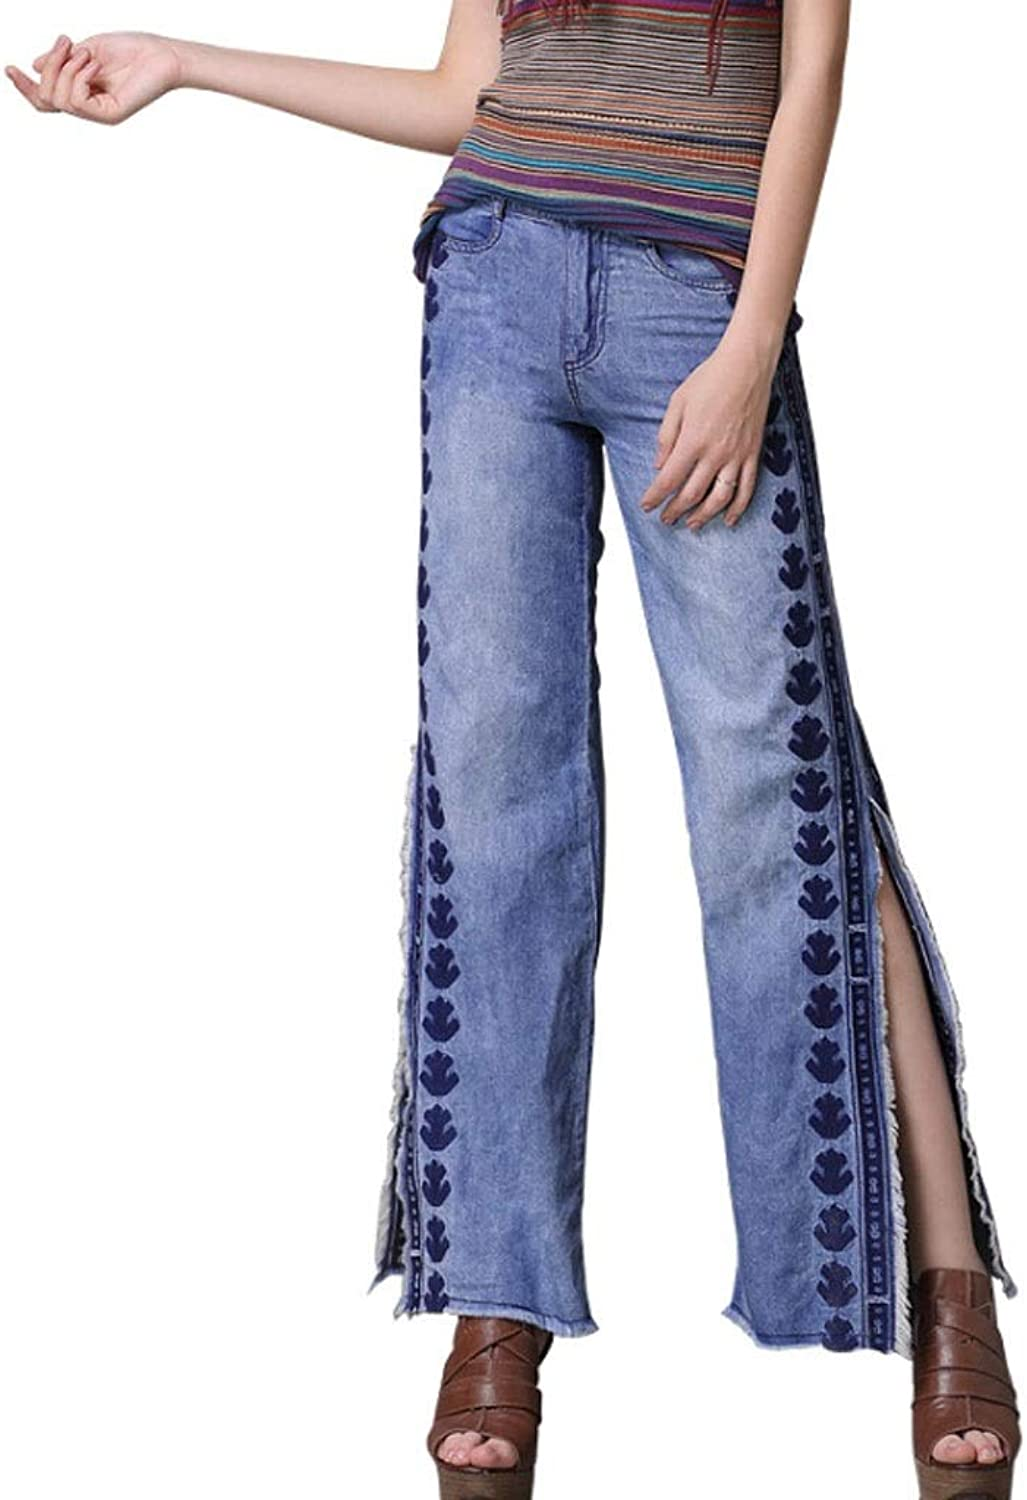 Embroidered Denim Trousers Woman Split Wide Leg Pants Retro Loose Casual (color   bluee, Size   S)